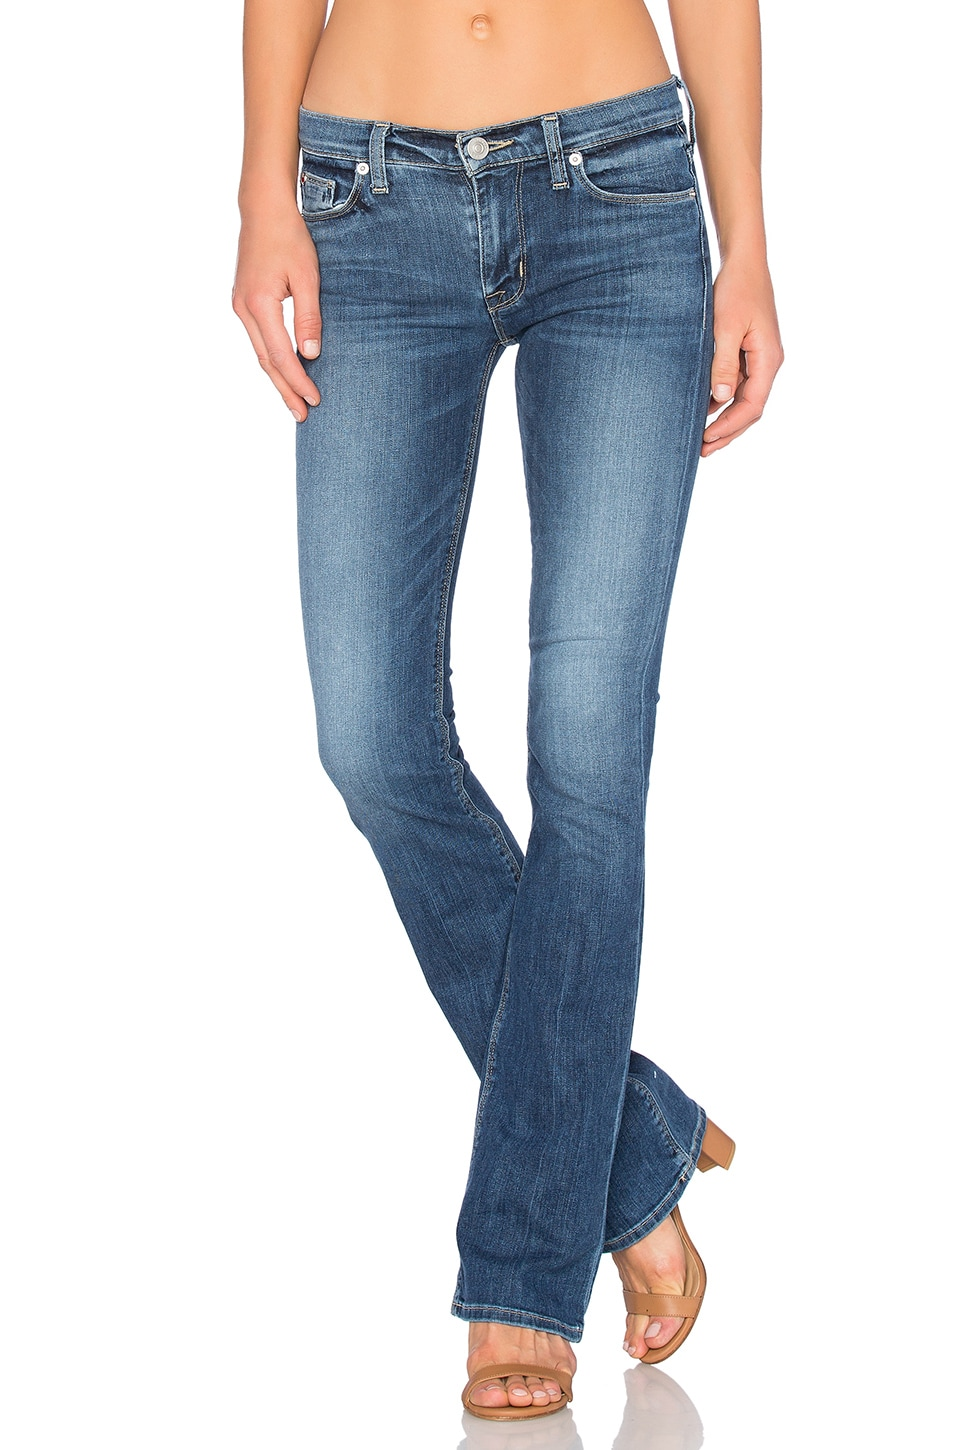 Love Midrise Bootcut by Hudson Jeans